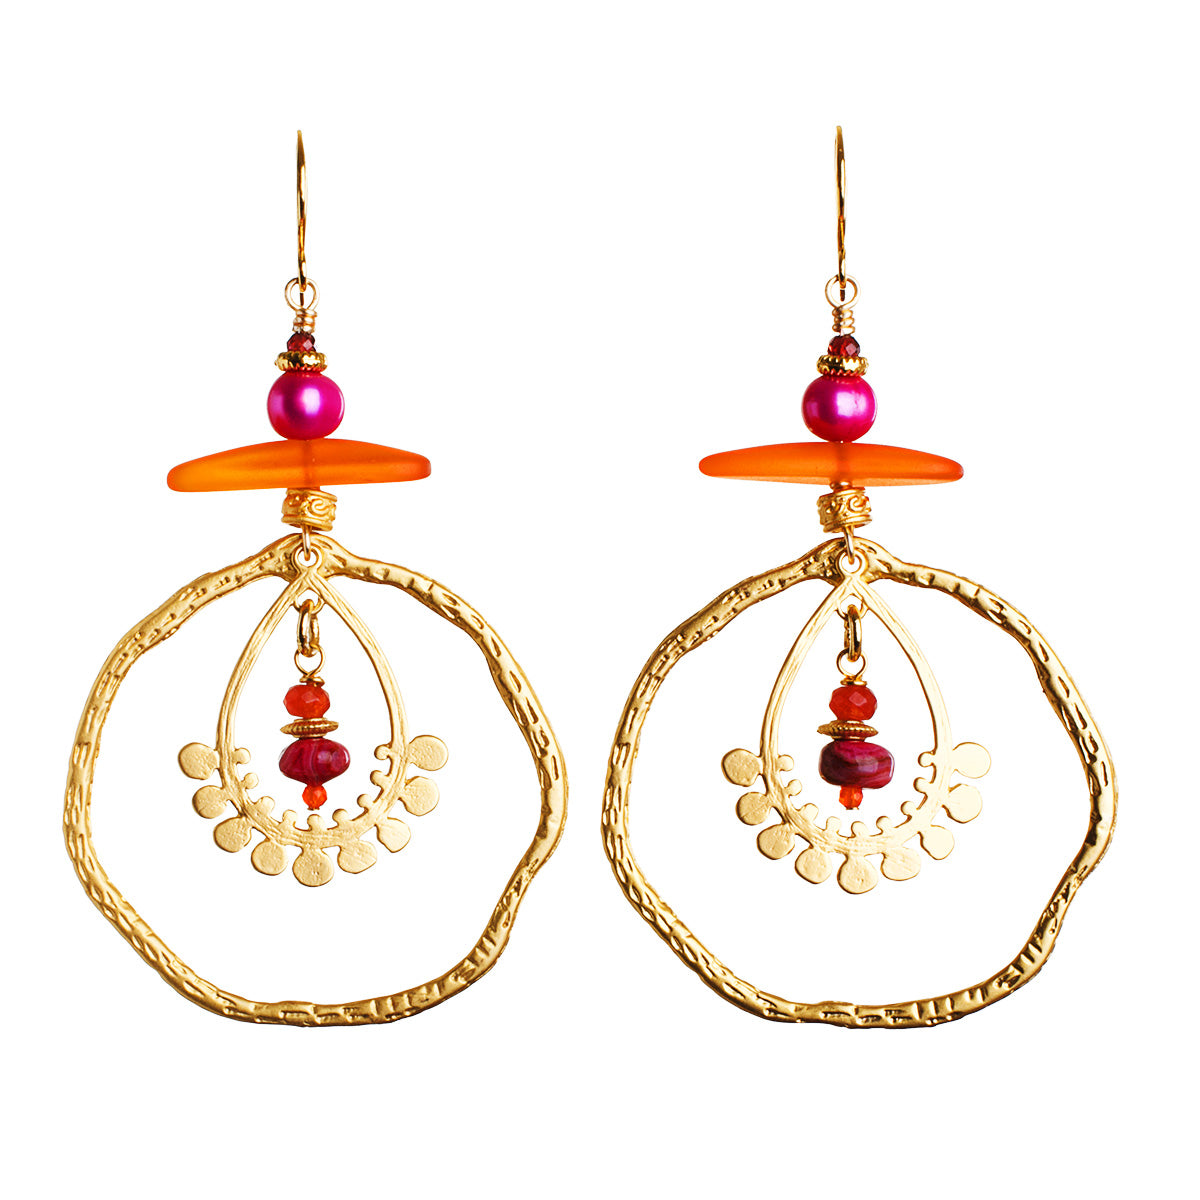 N°628 The Anemone Party Statement Earrings